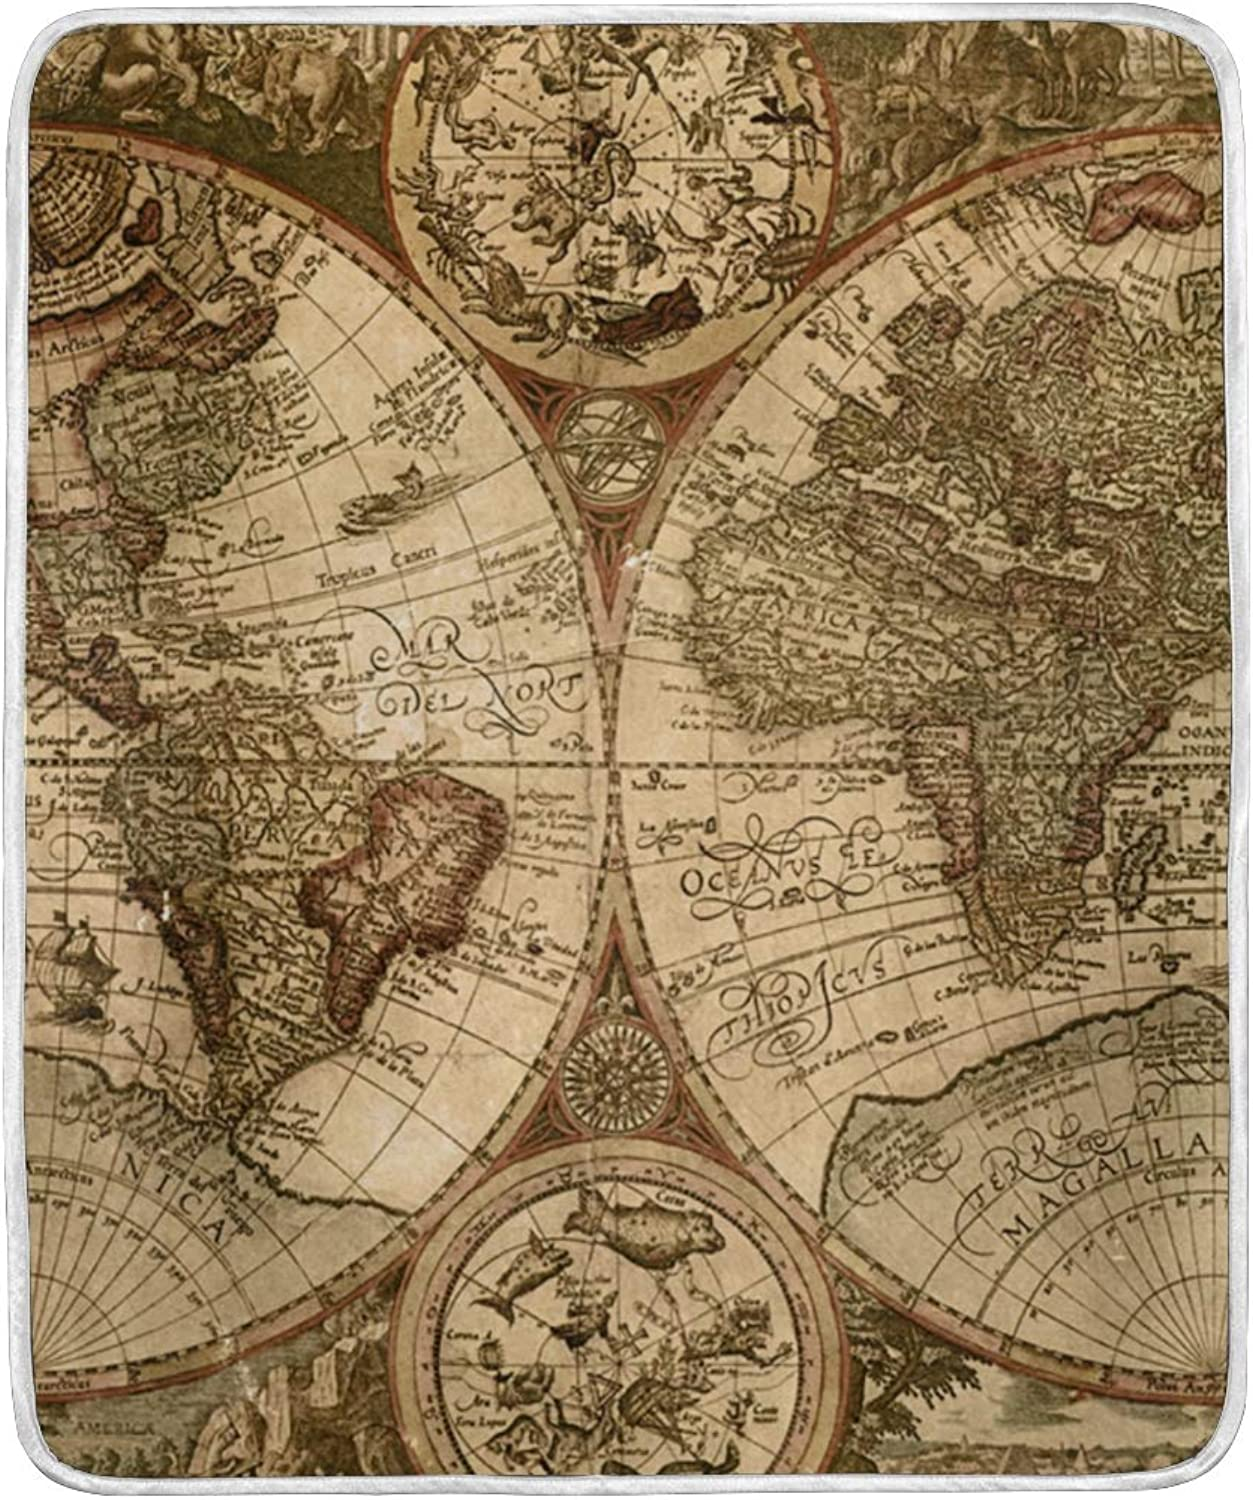 VIMMUCIR Home Decor Old World Map Blanket Soft Warm Throw Blankets for Bed Sofa Lightweight Travelling Camping 50 x 60 Inch for Kids Adults